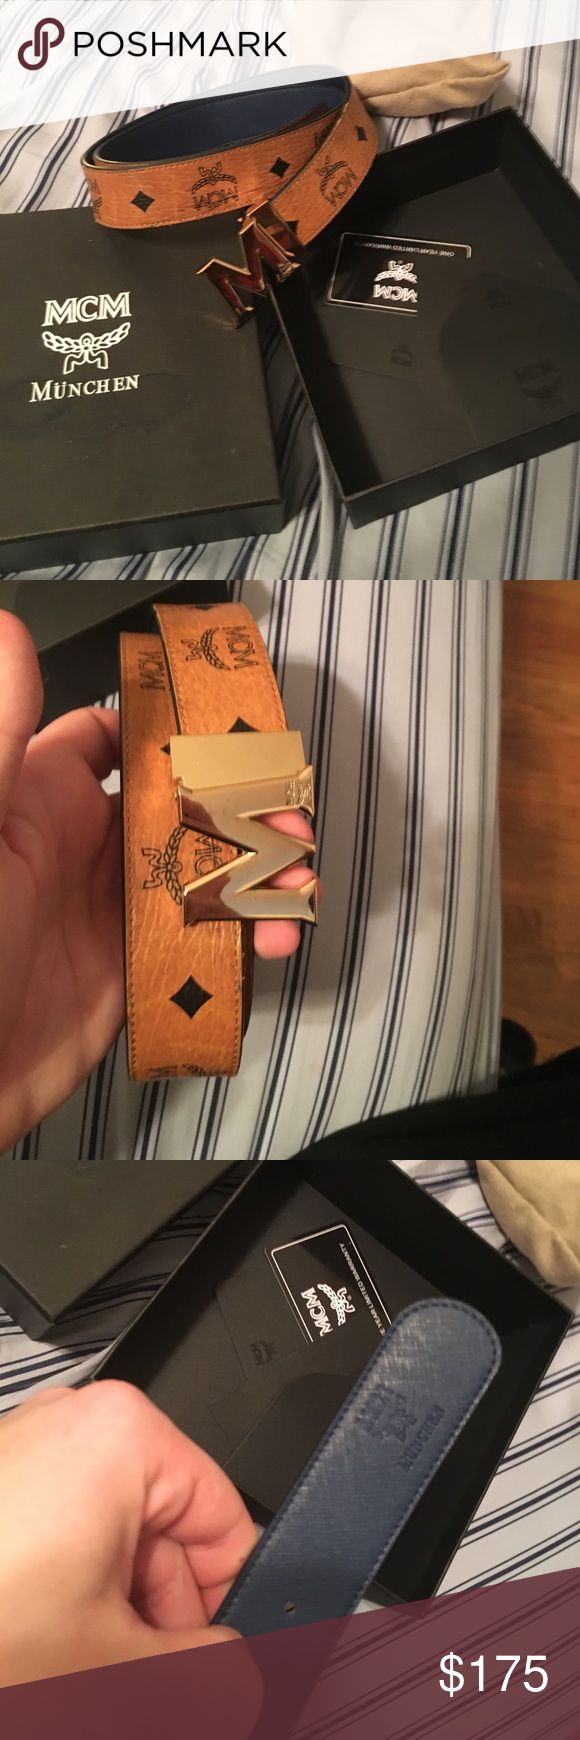 Mcm belt cognac blue tan reversible belt size 32 Up for sale is an mcm blue and tan reversible belt with box dustbags and cards. Belt has been cut to about a size 32 waist men. Let me know if you have any questions. Thanks MCM Accessories Belts